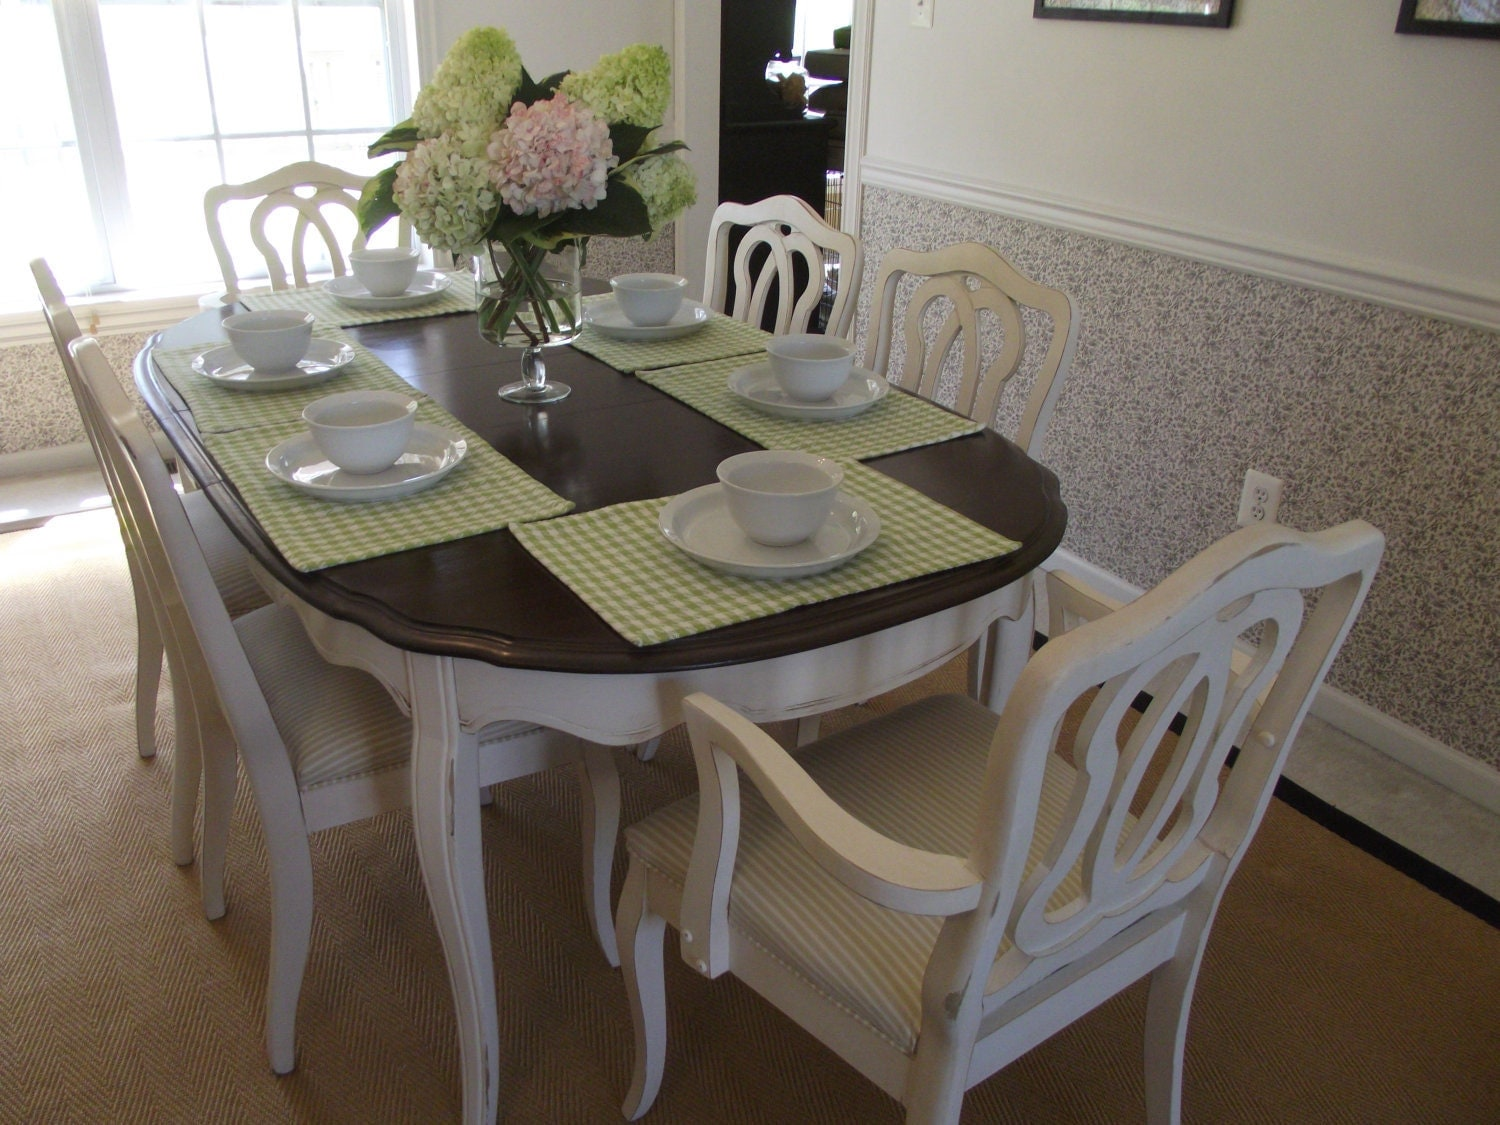 Il Fullxfull Vintage French Provincial Dining Room Table Chairs